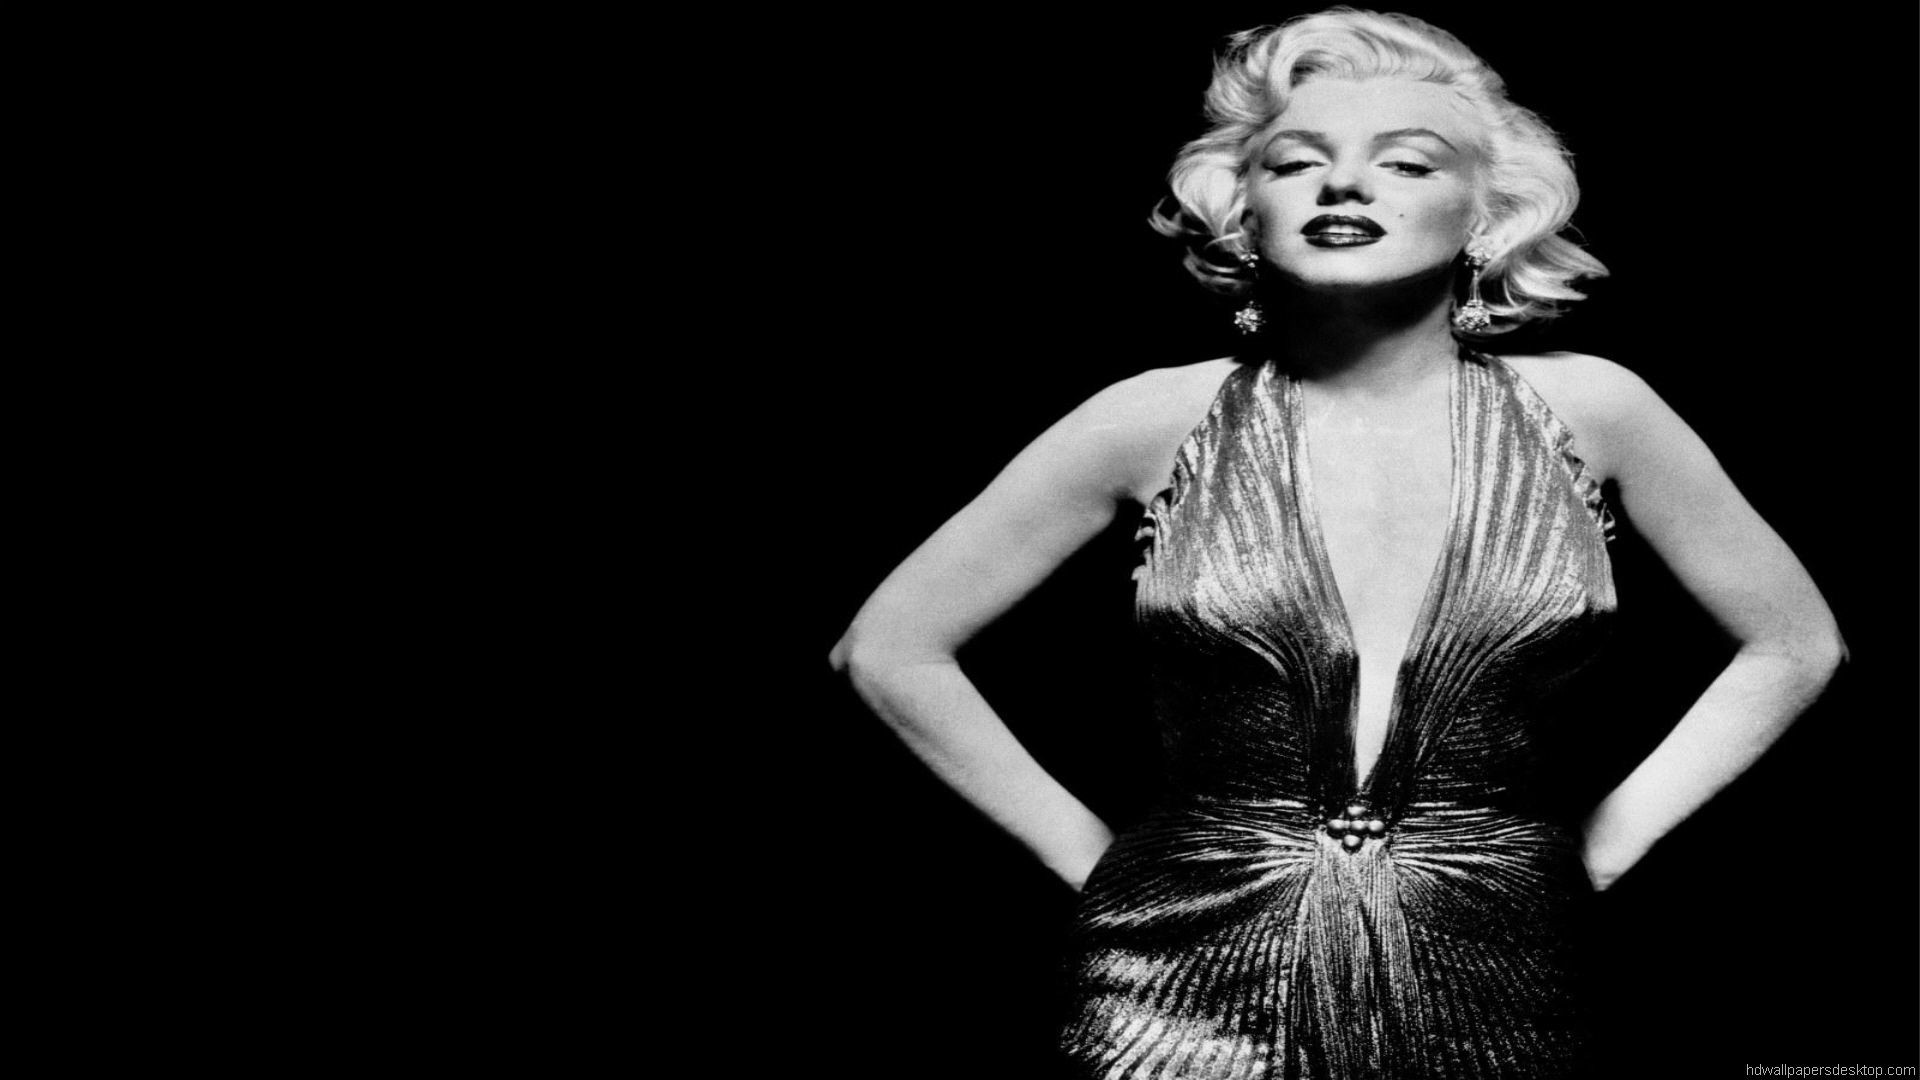 Res: 1920x1080, Download free marilyn monroe wallpapers for your mobile phone by